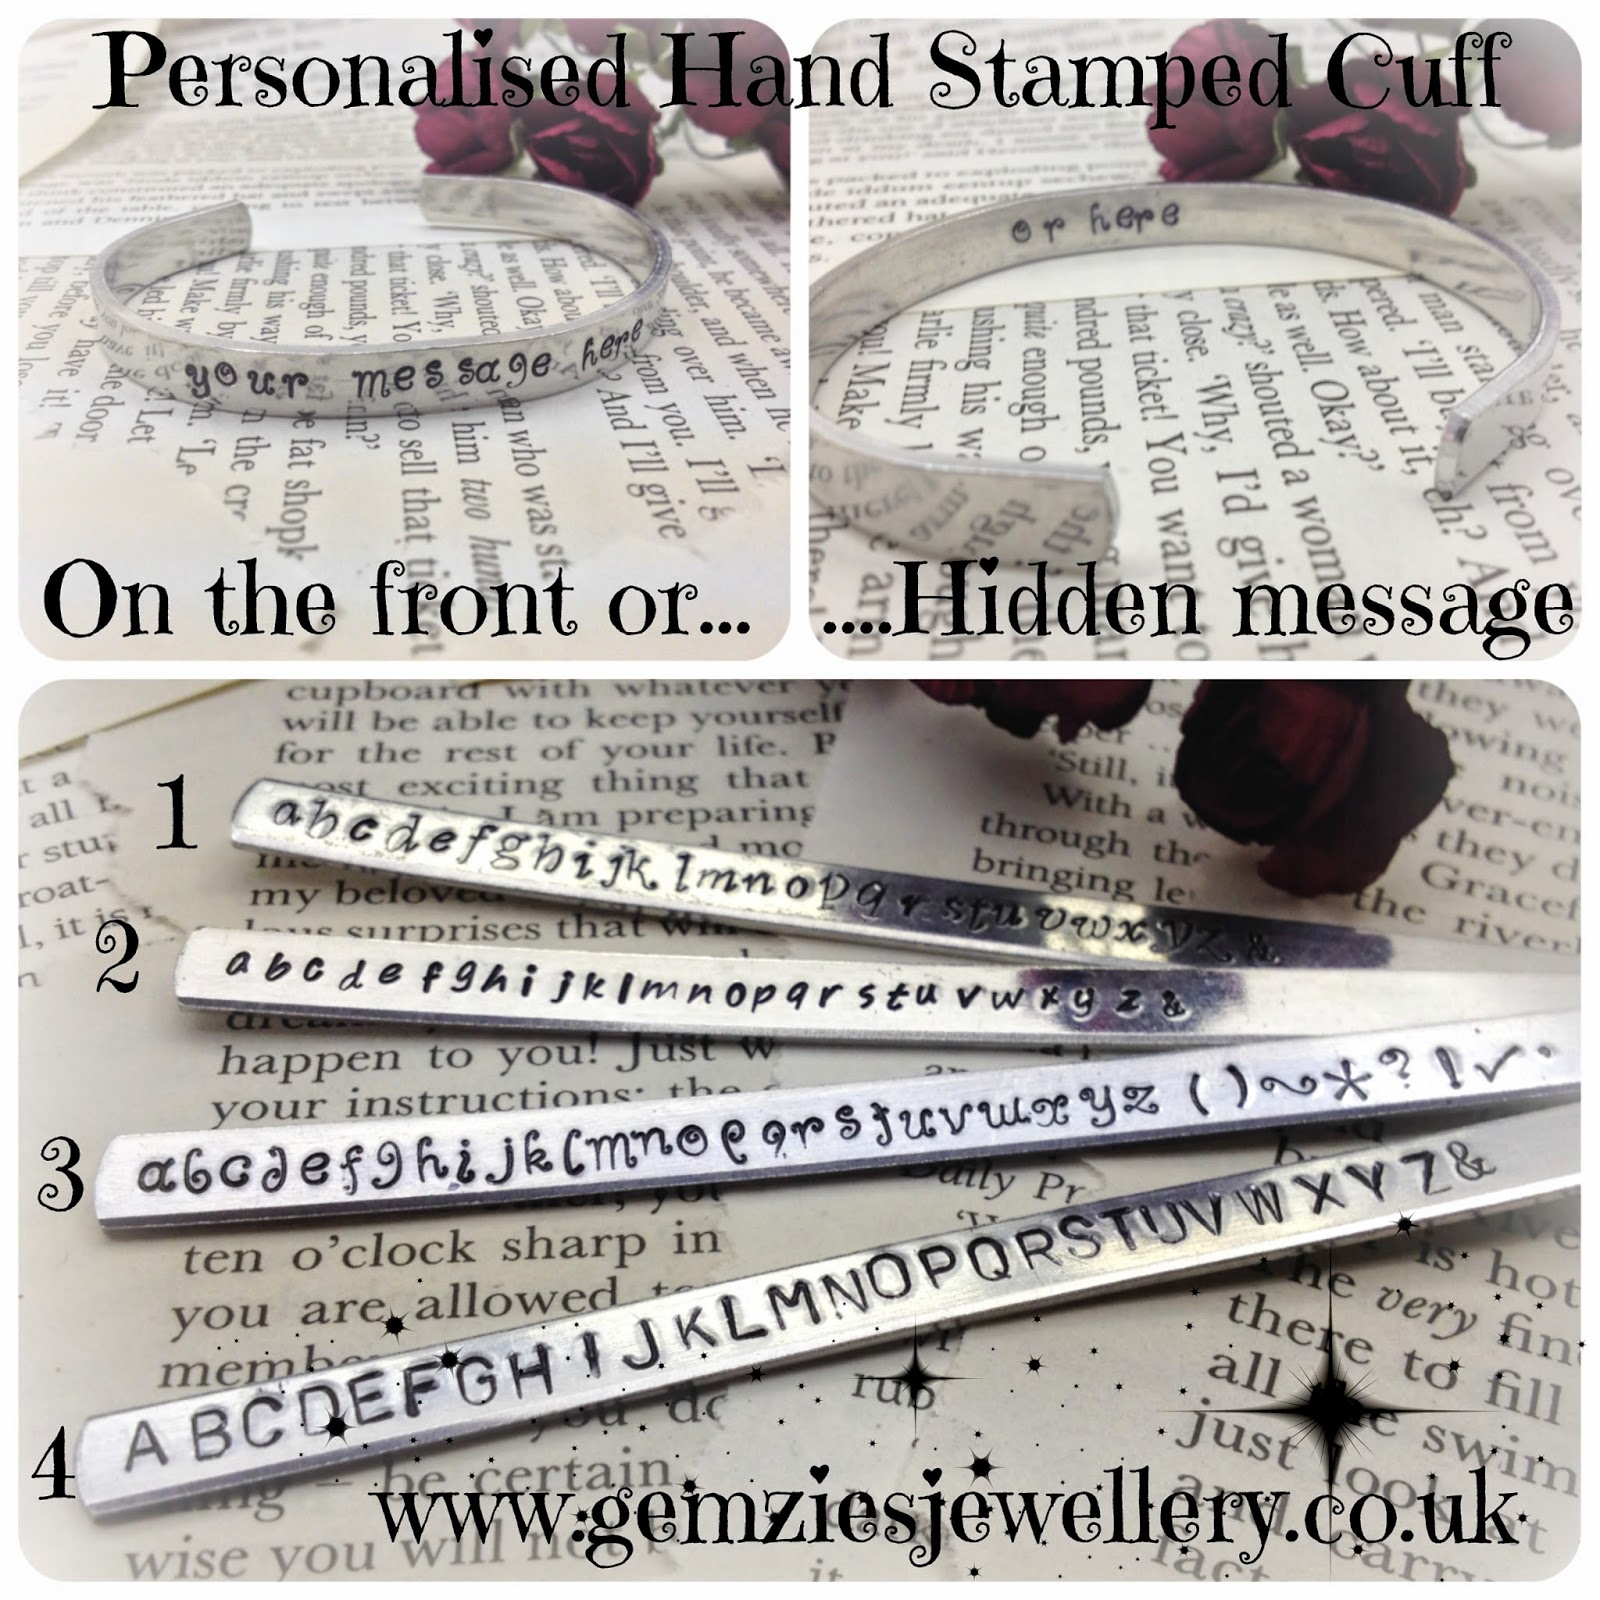 Hand stamped with your own message